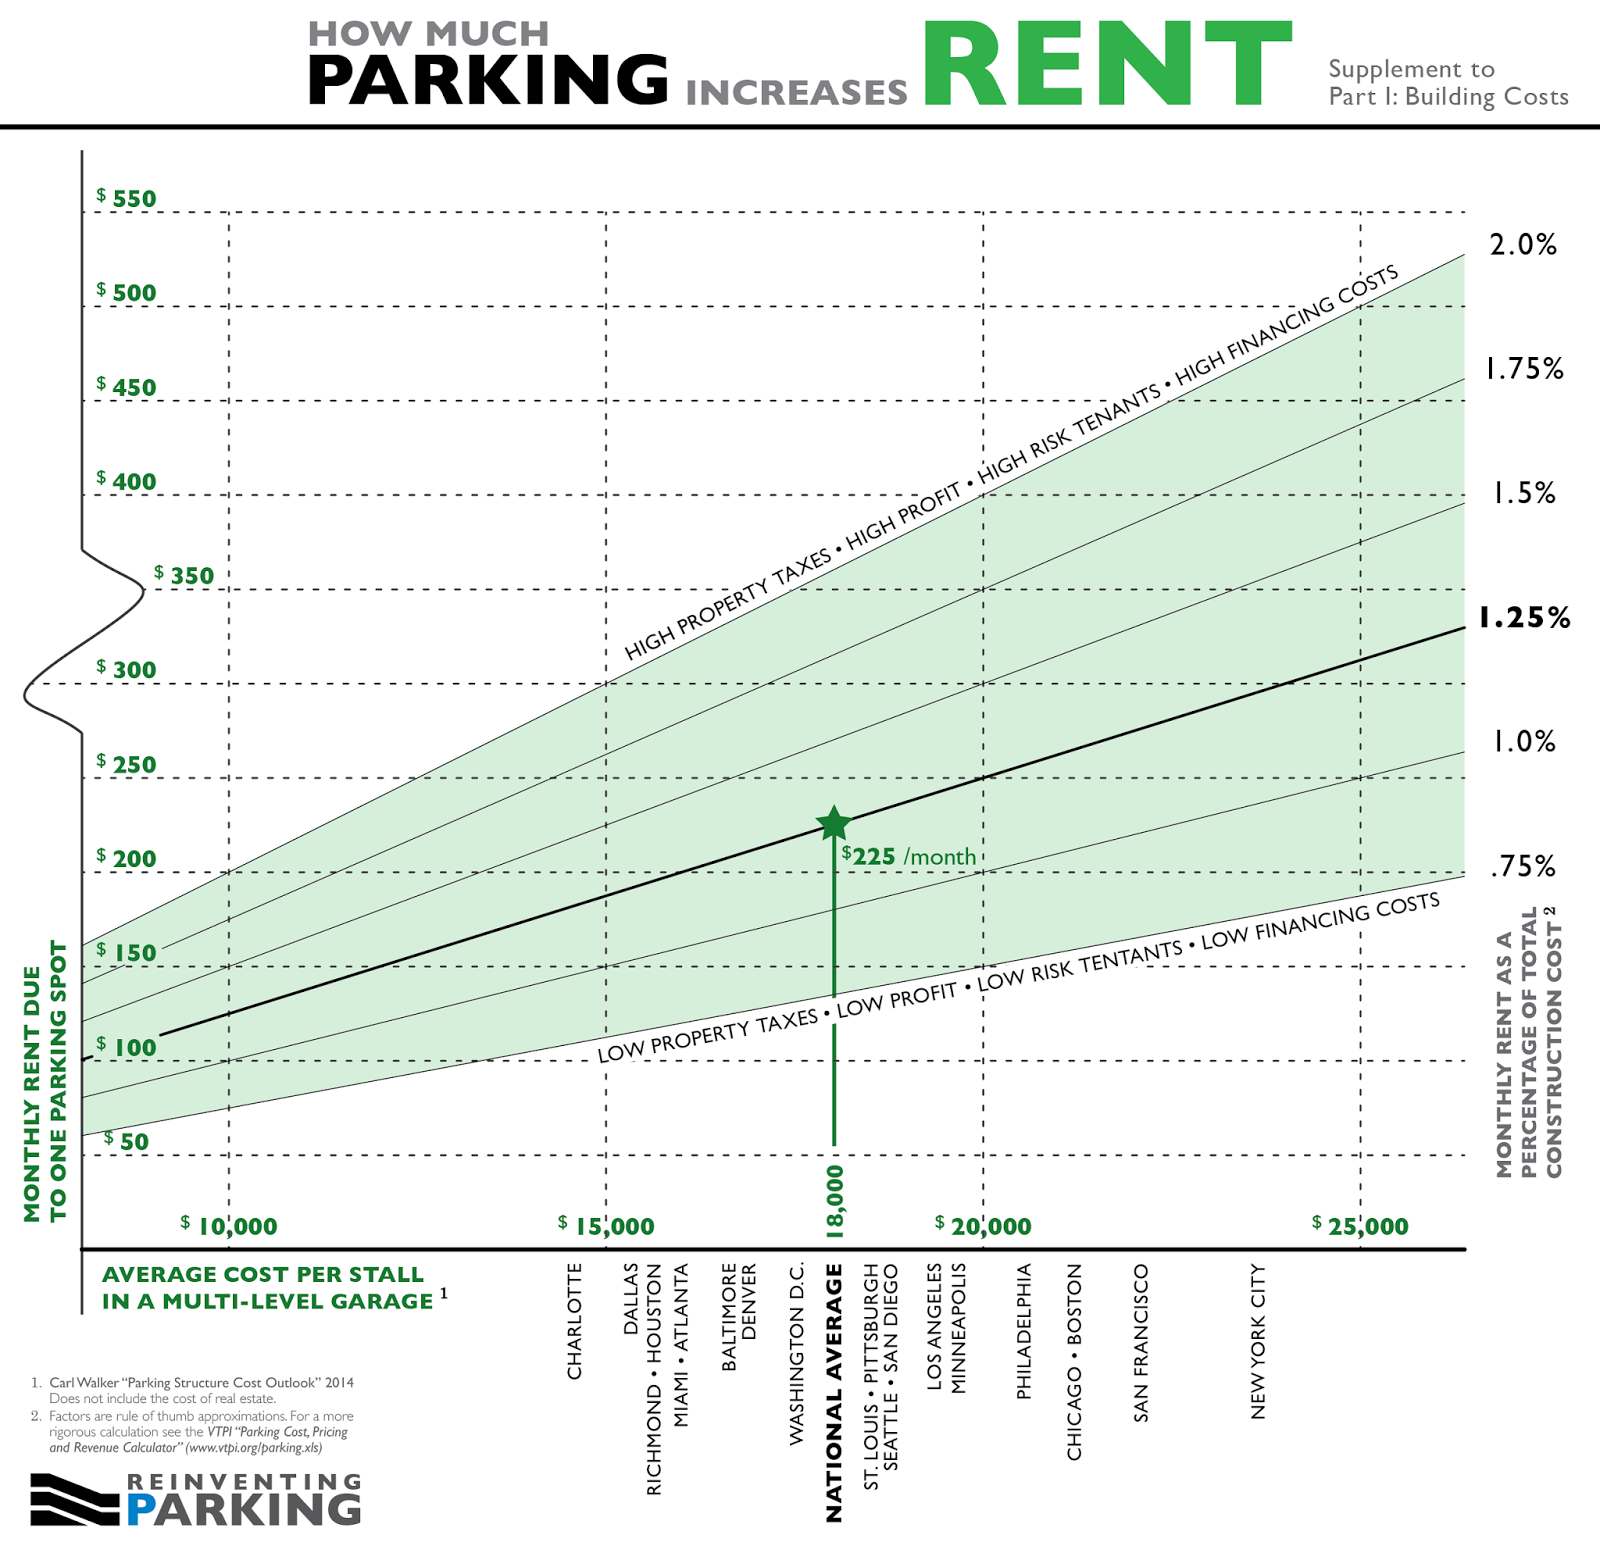 Parking_Rent_-_Construction_Supplement.png